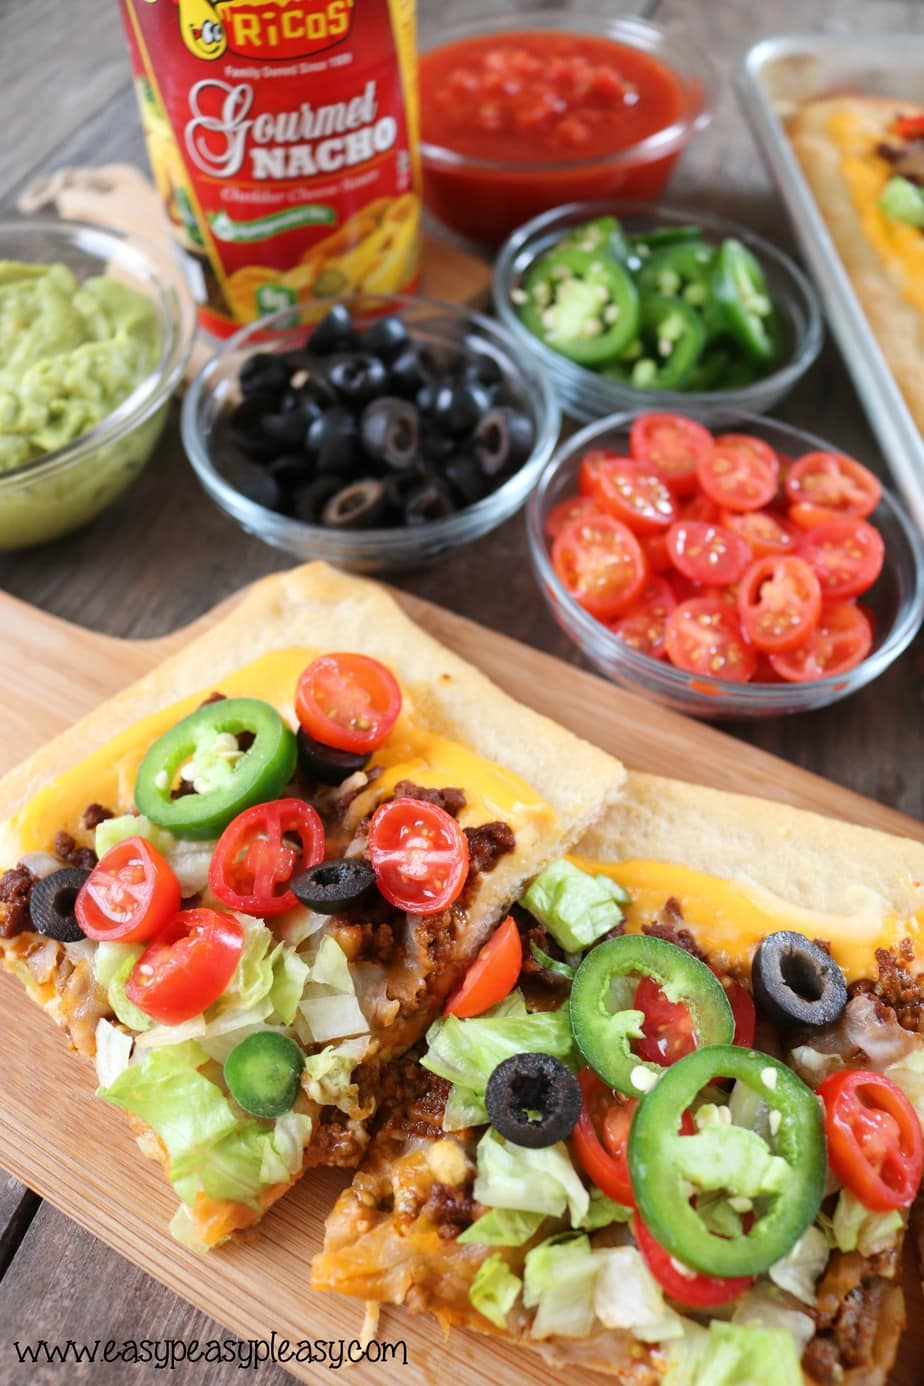 Make the ultimate sheet pan taco pizza with Ricos Gourmet Nacho Cheese as your sauce.